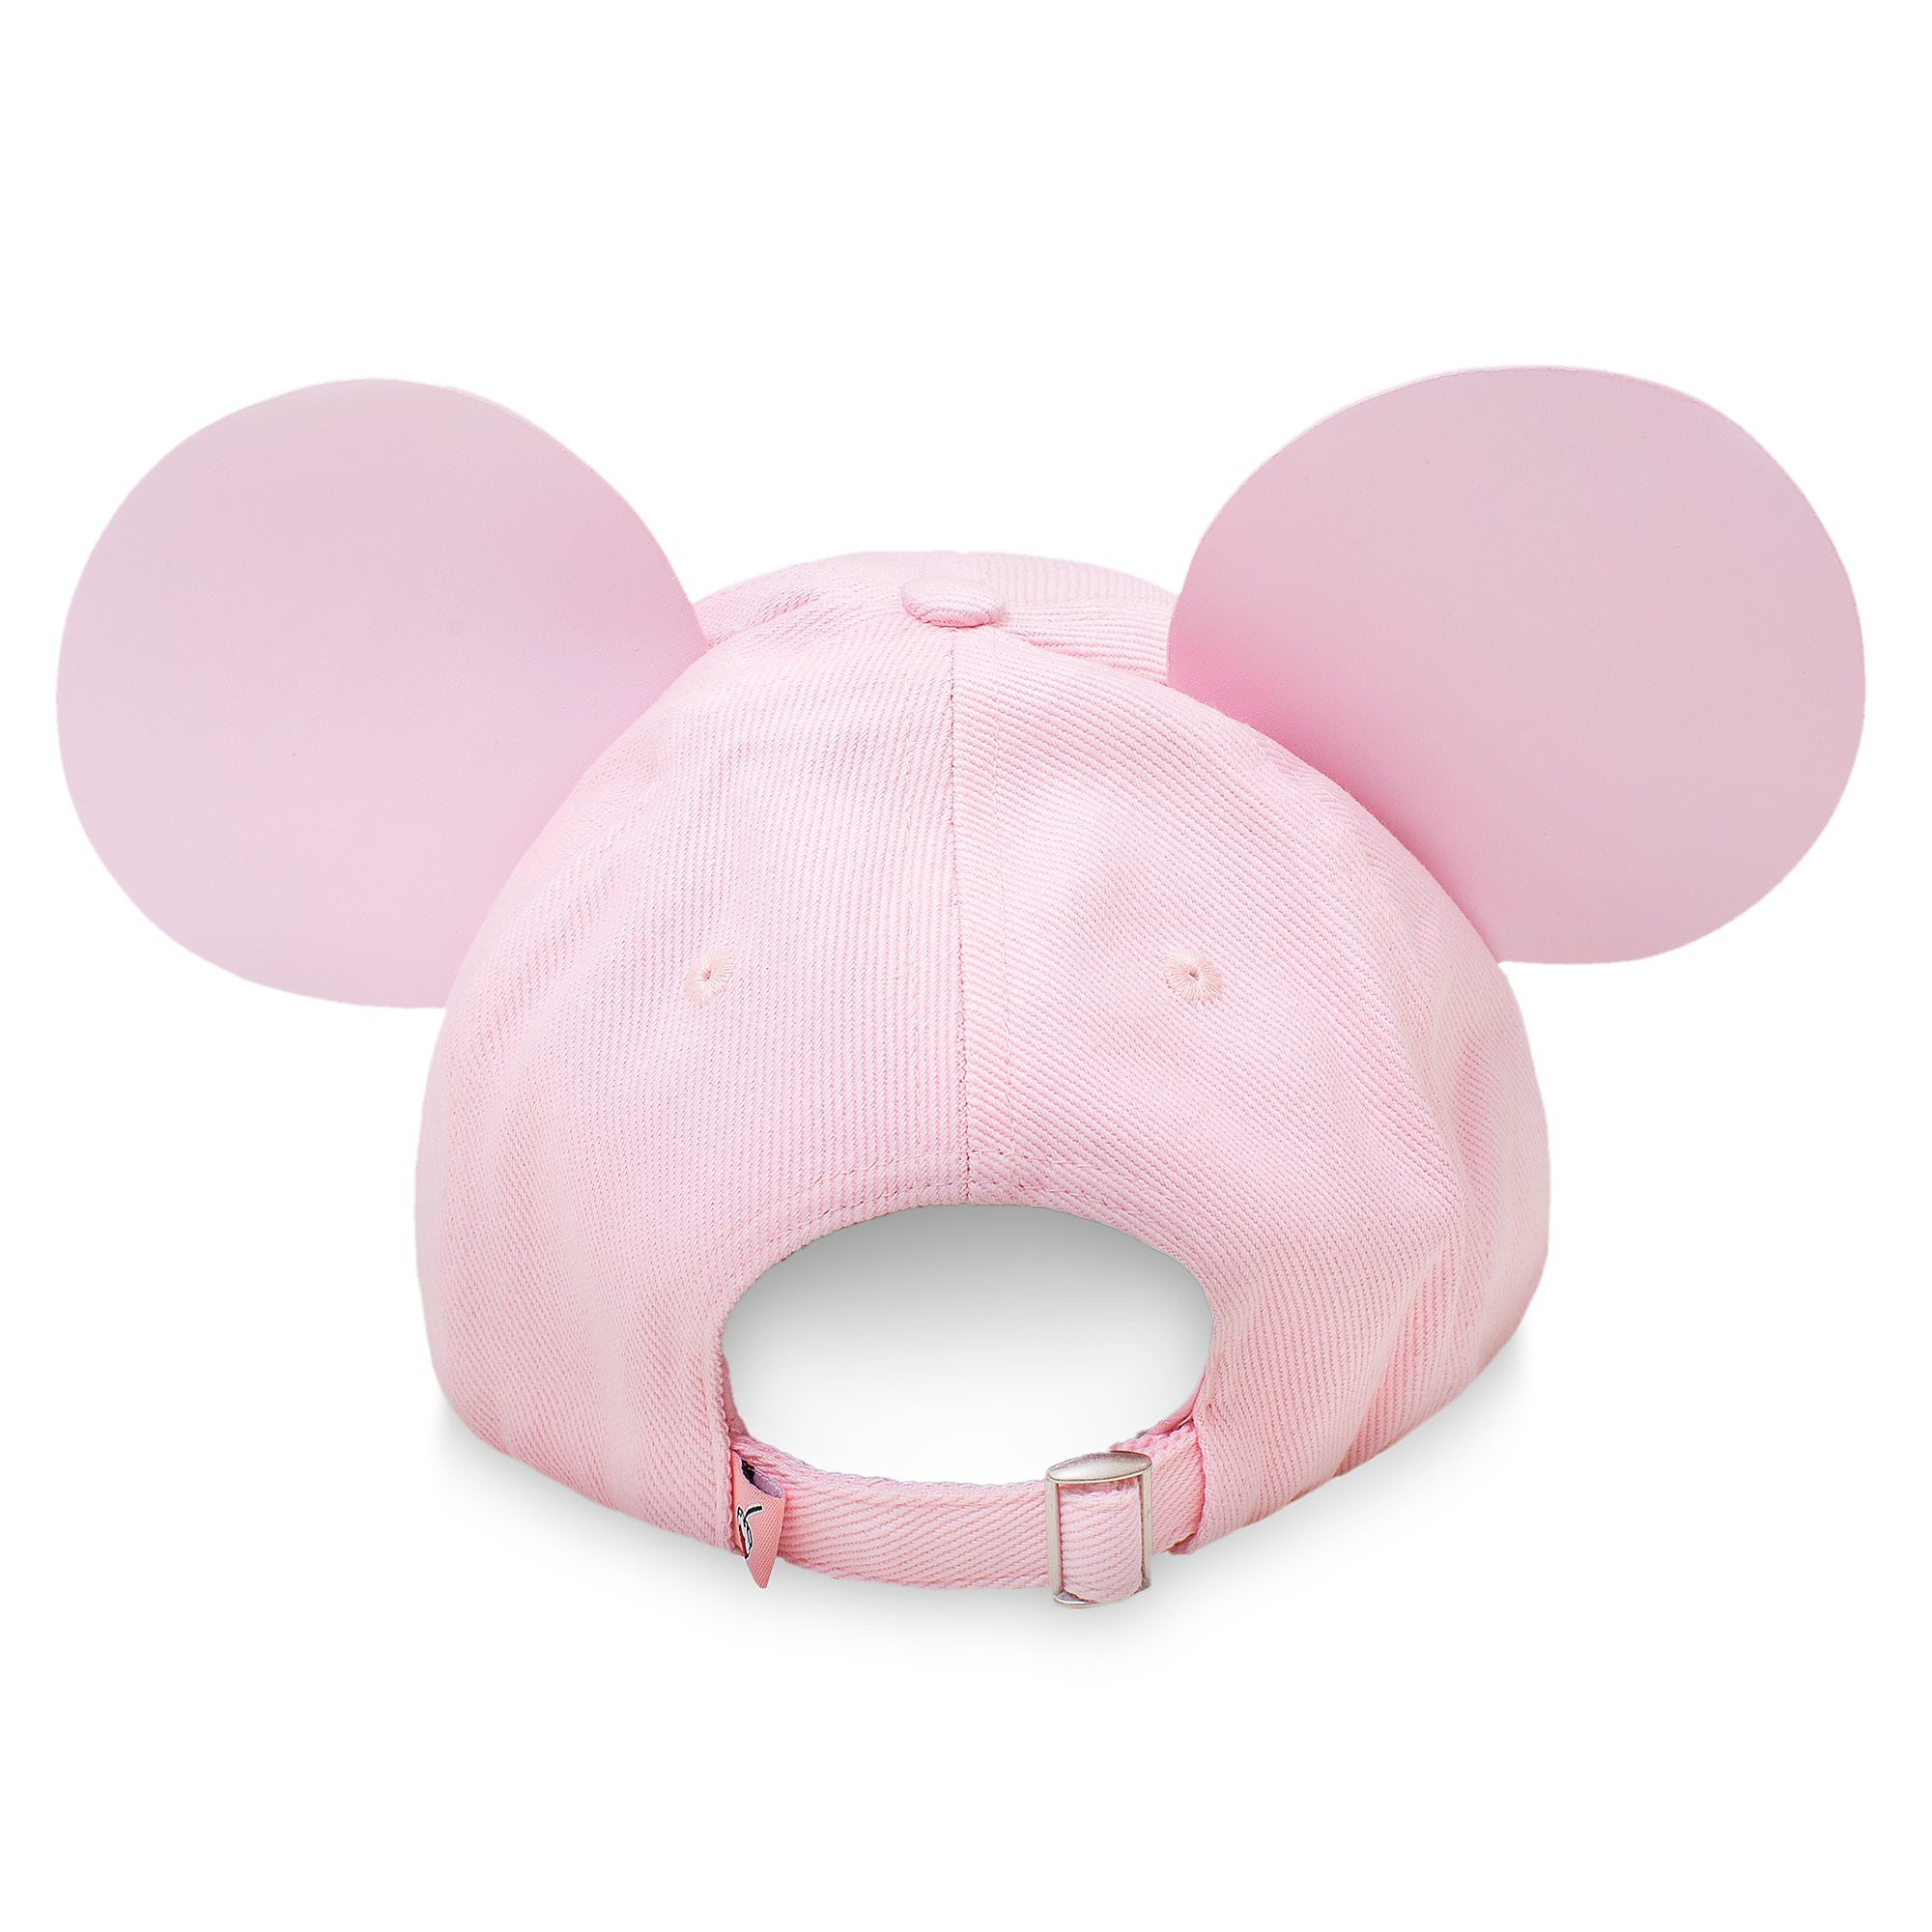 0eb966a85 Mickey Mouse Ears Baseball Cap for Adults by Cakeworthy now ...